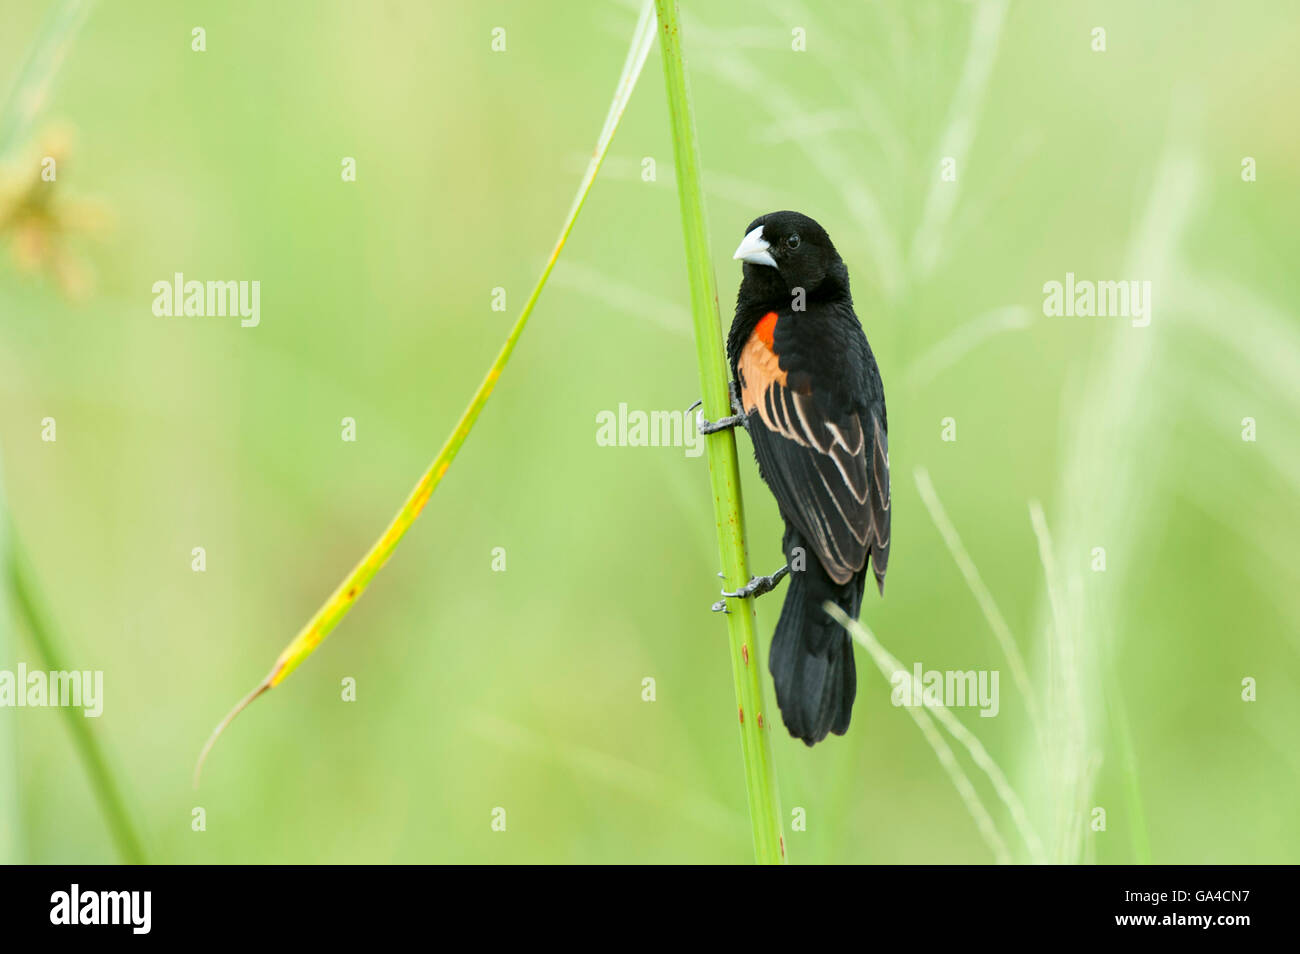 Fan-tailed widowbird, Euplectes axillaris, Lake Manyara National Park, Tanzania - Stock Image